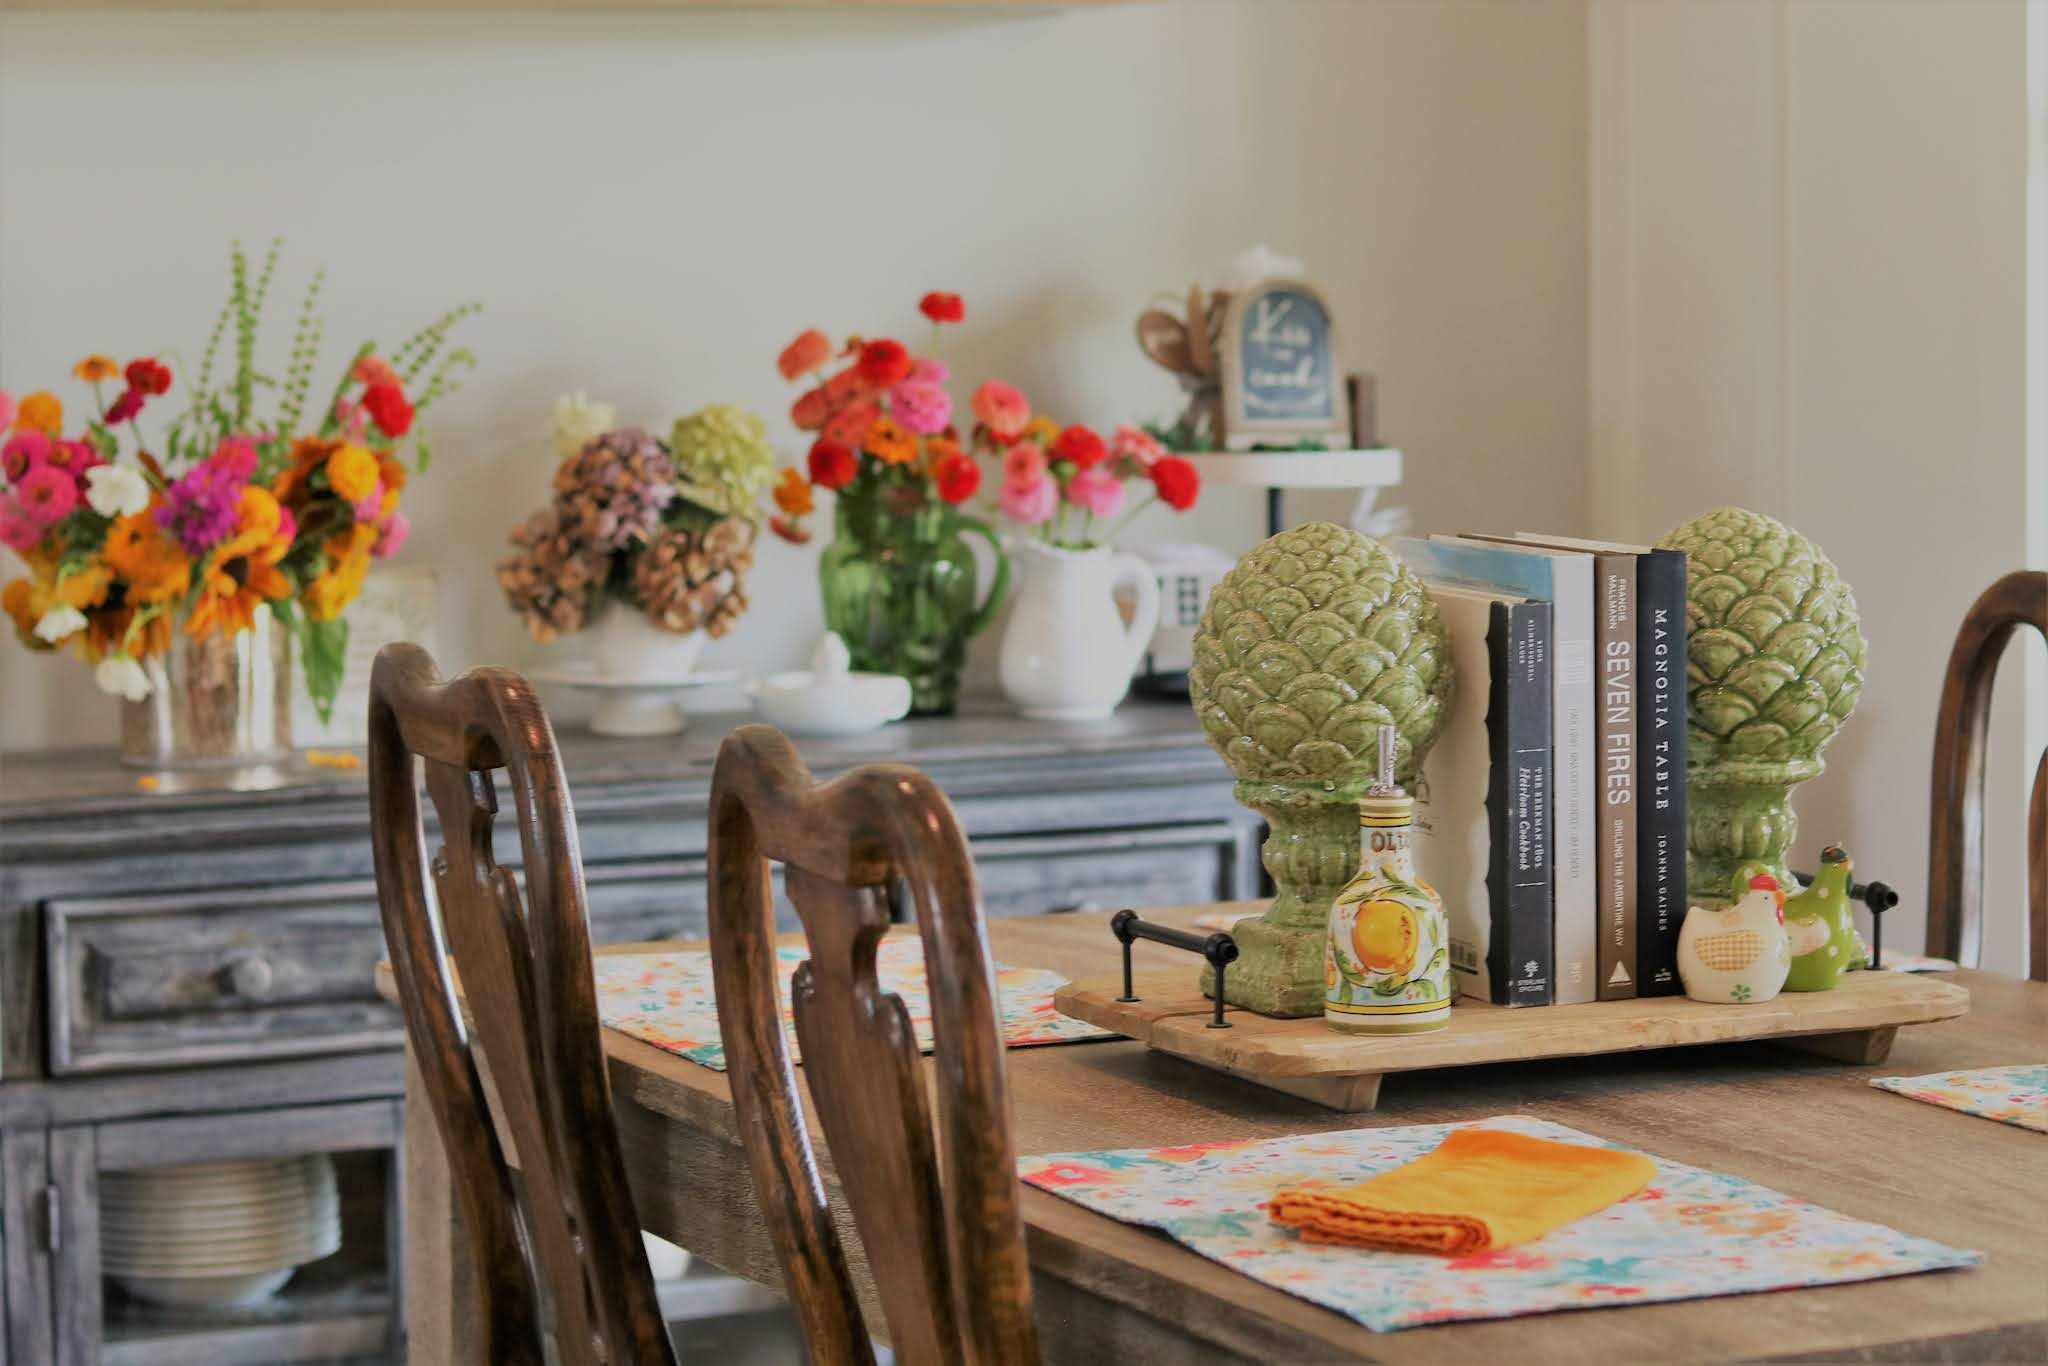 Summer-home-southern-tour-breakfast-floral-farmtable-athomewithjemma